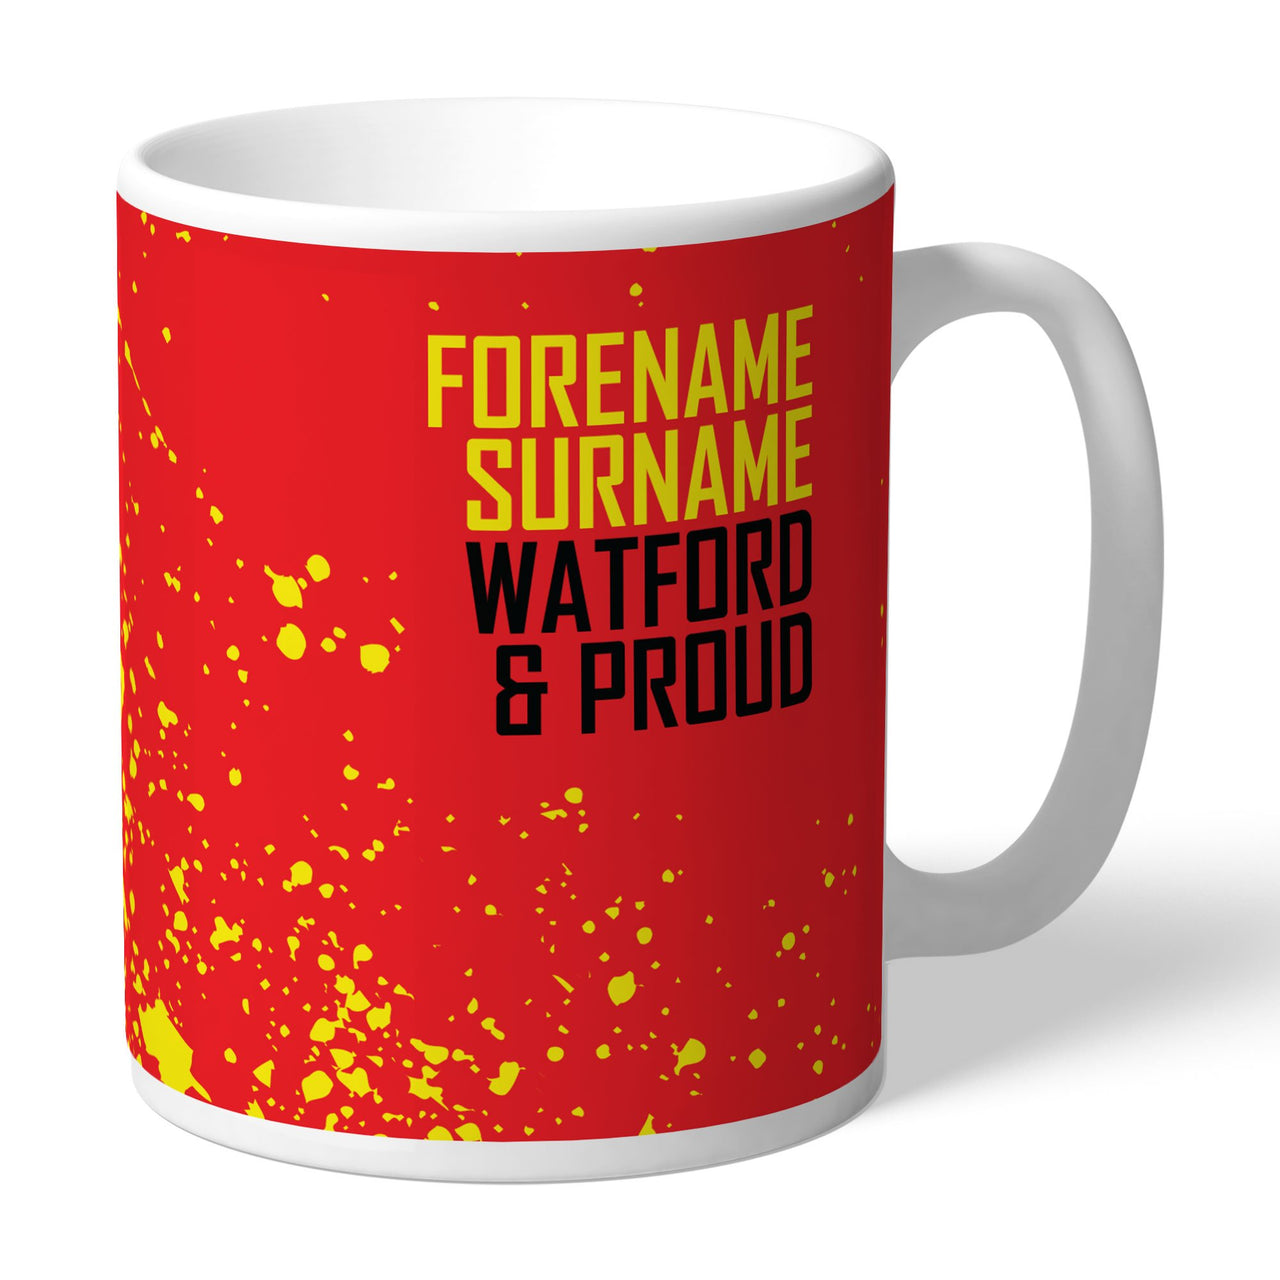 Watford FC Proud Mugs, Gifts